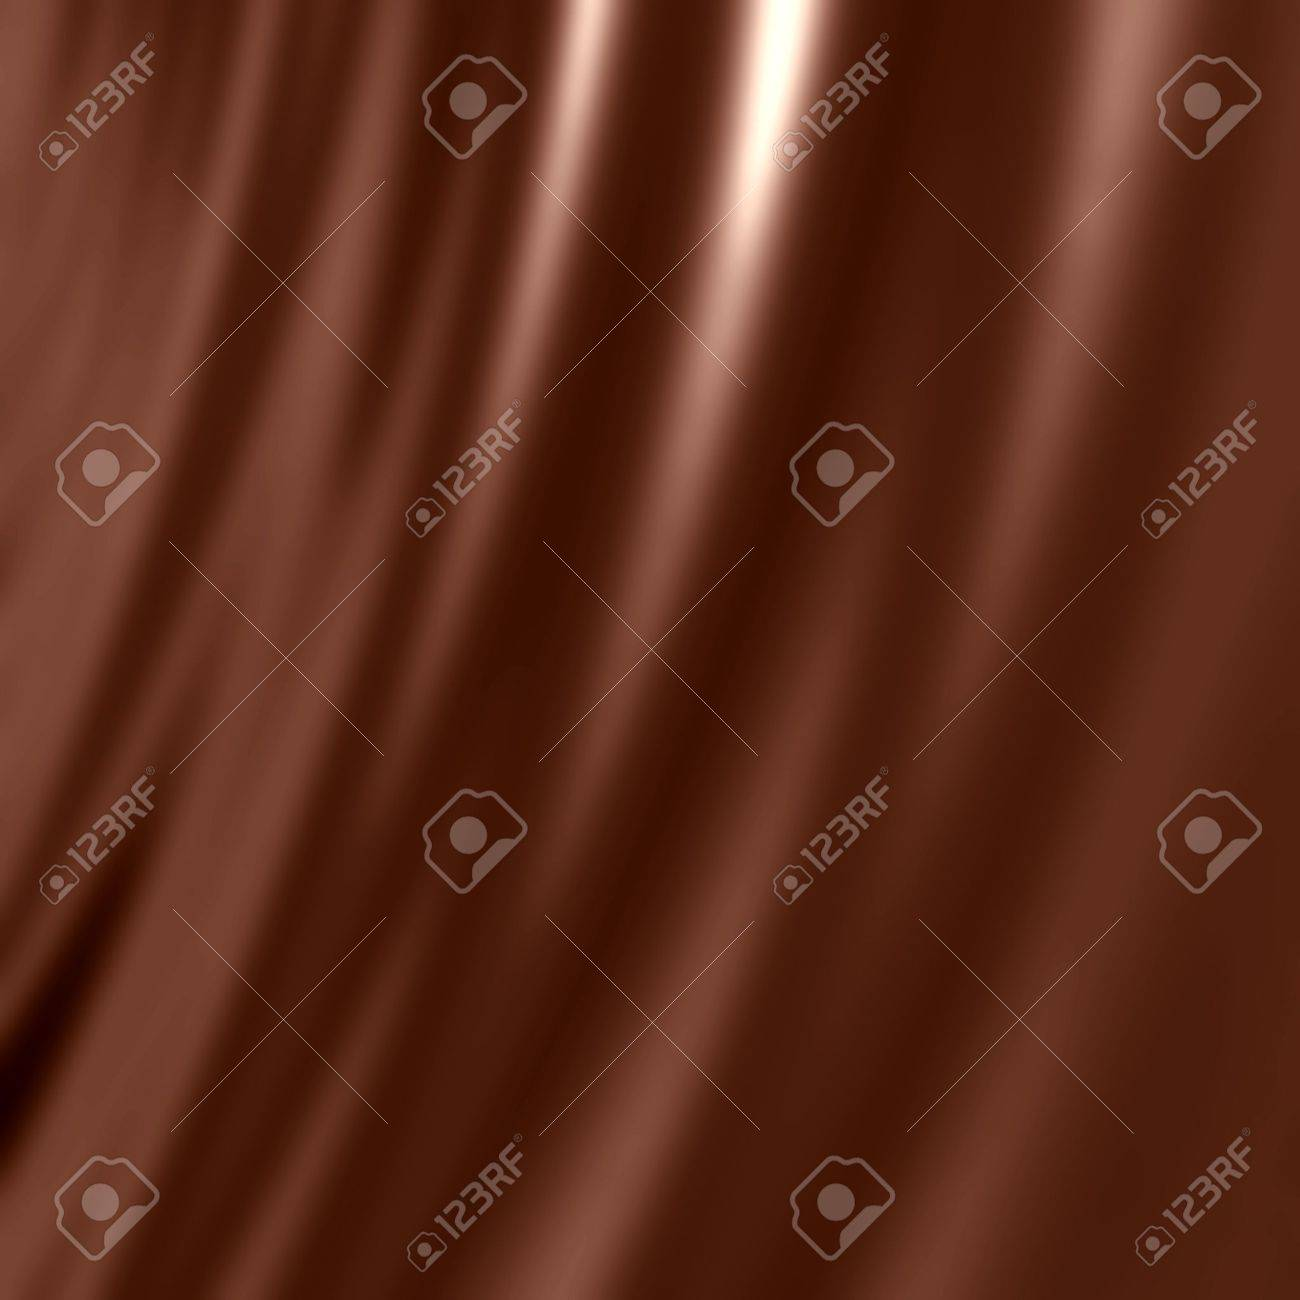 Chocolate background with some soft shades and highlights Stock Photo - 15009257